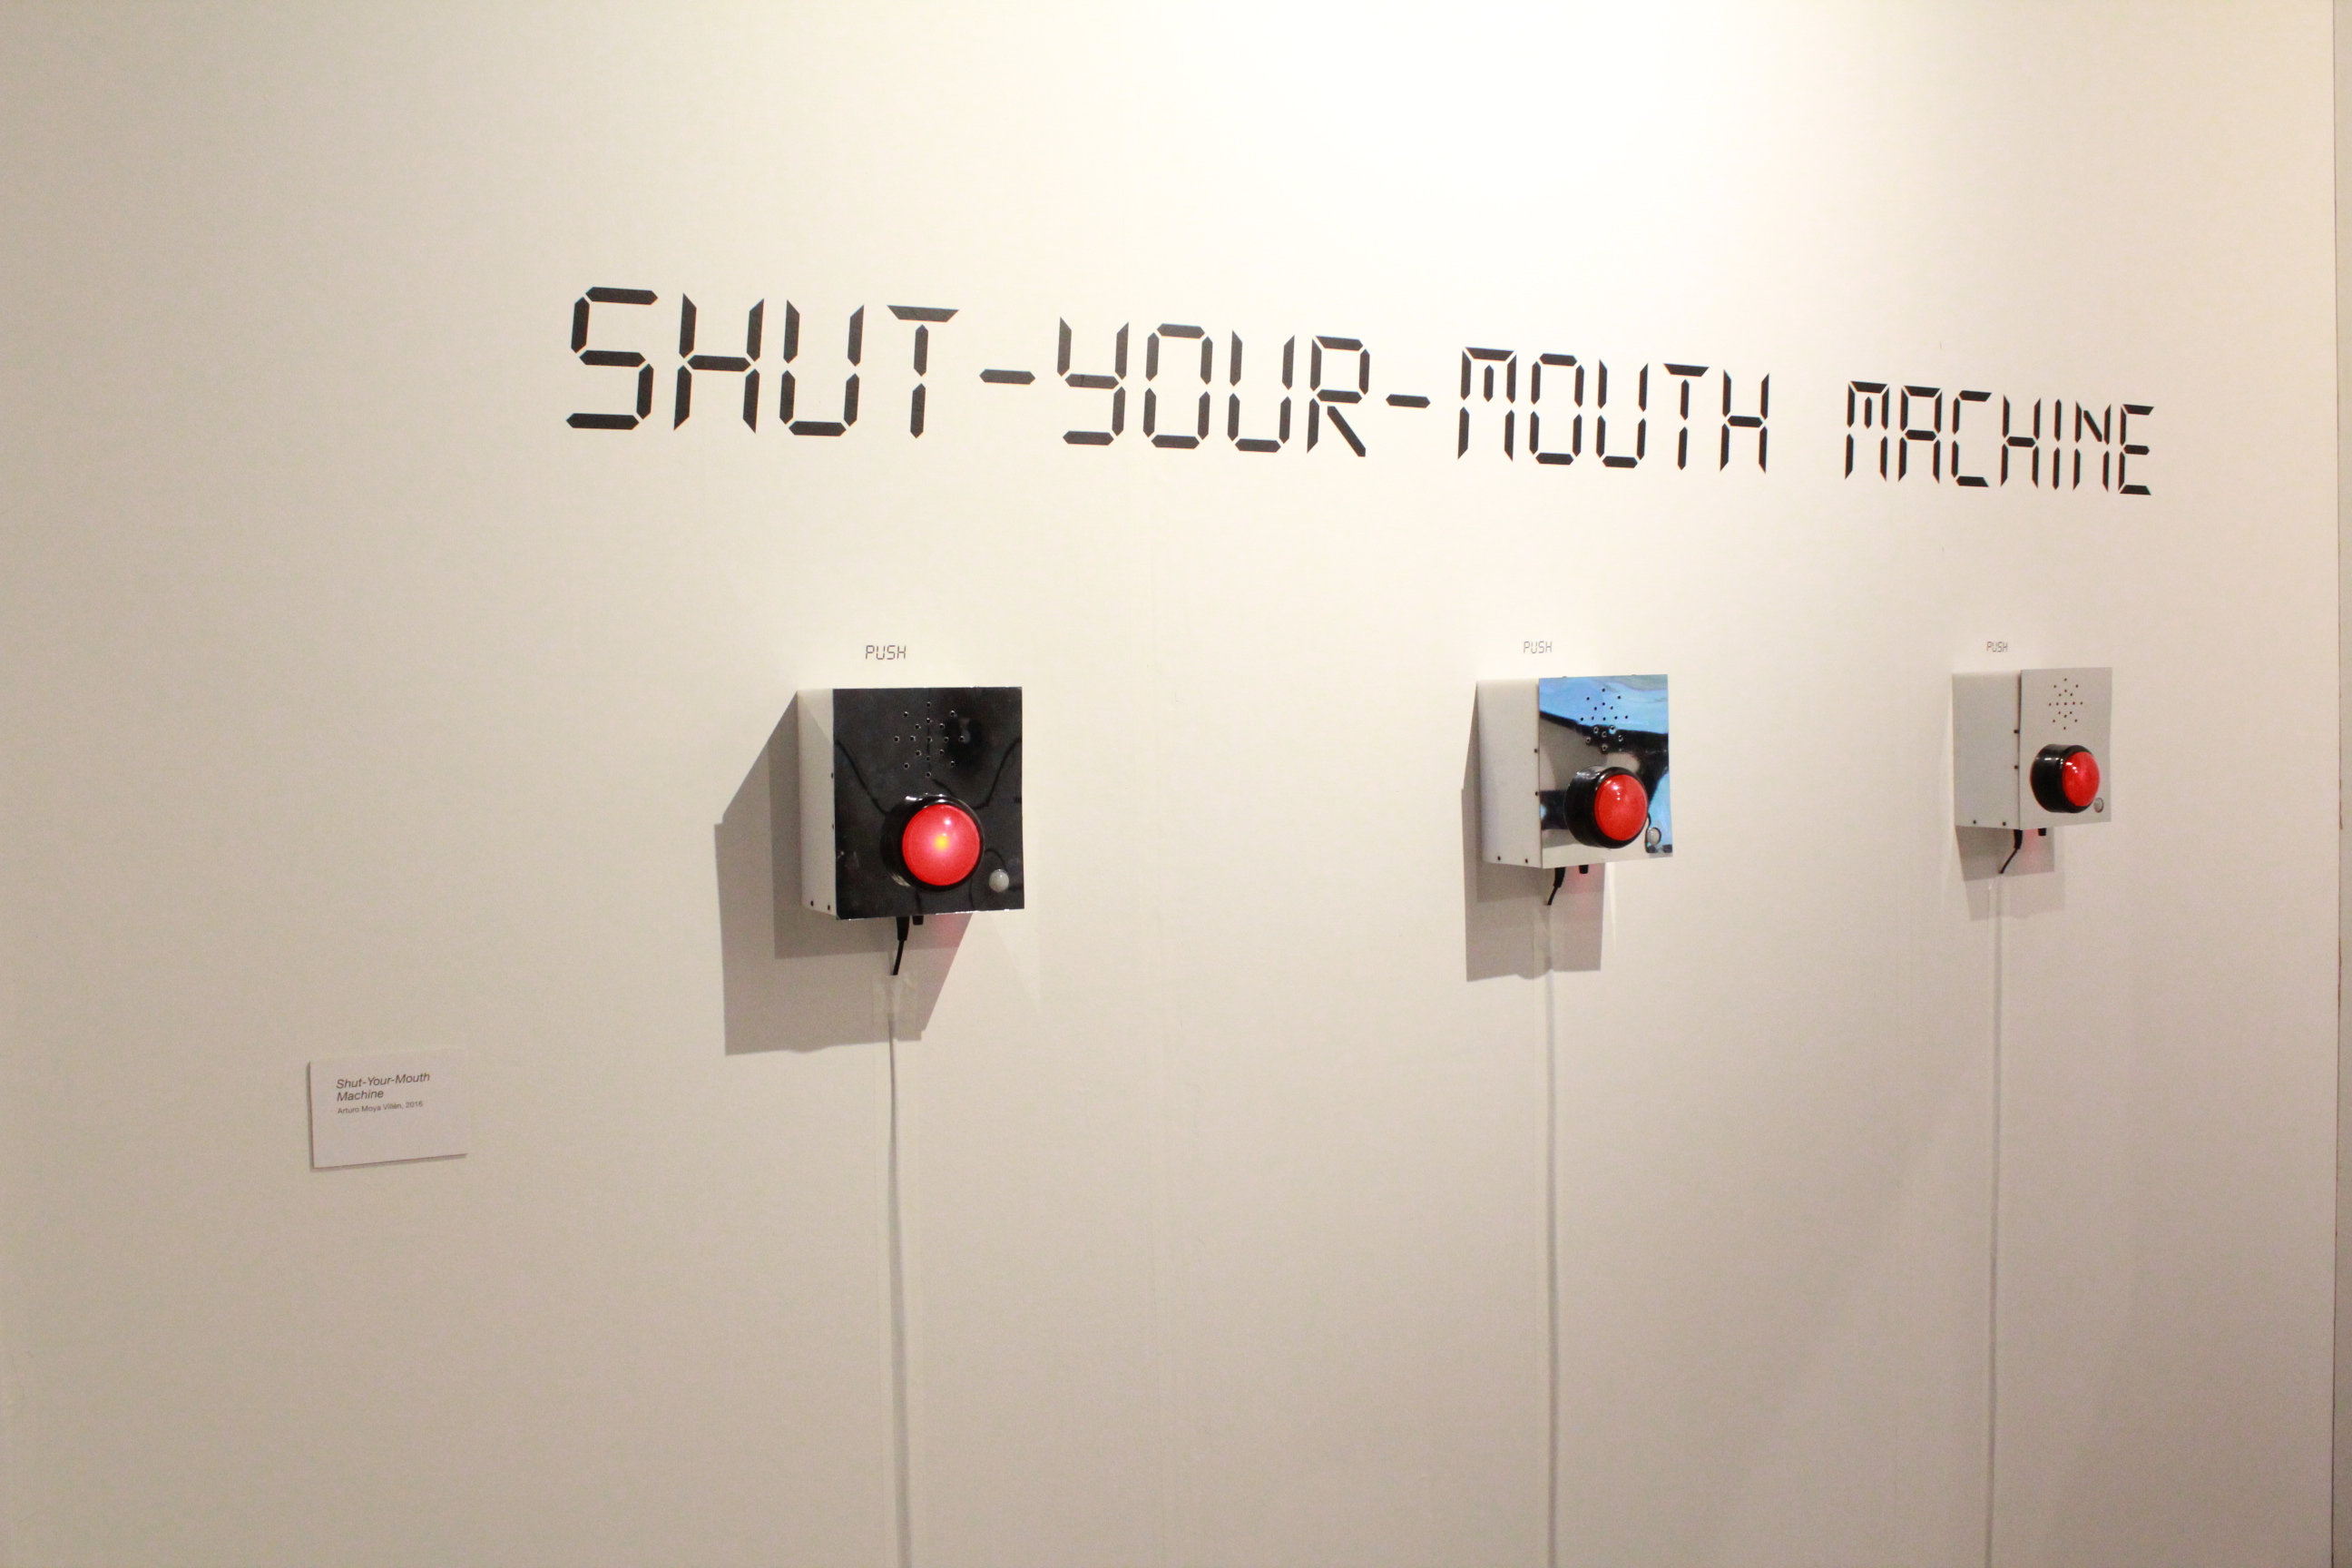 Máquina de callar / Shut-Your-Mouth Machine